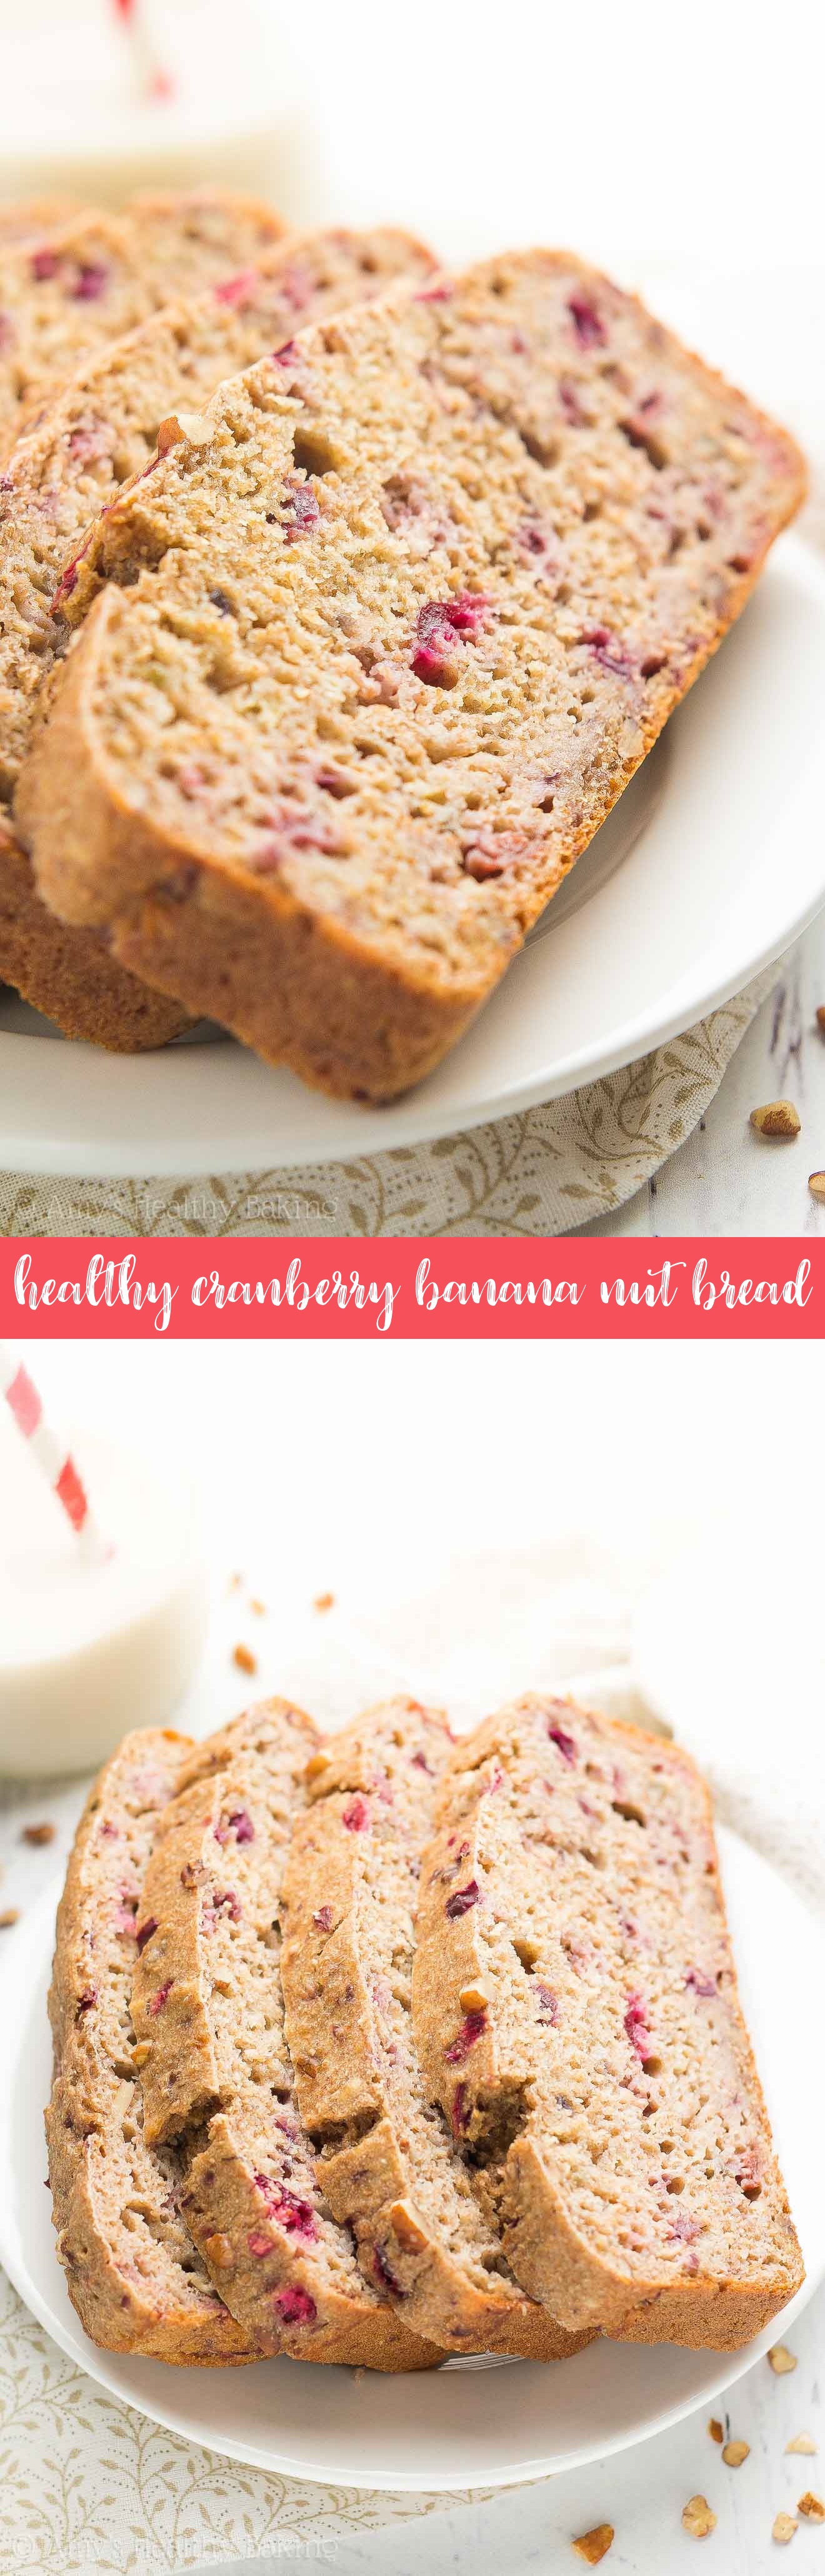 {HEALTHY!} Cranberry Pecan Banana Bread -- only 119 calories & as tender as cake! This recipe tastes AMAZING & is so easy to make! (Seriously. No mixer required!) Perfect for guilt-free breakfasts, snacks & sweet treats!